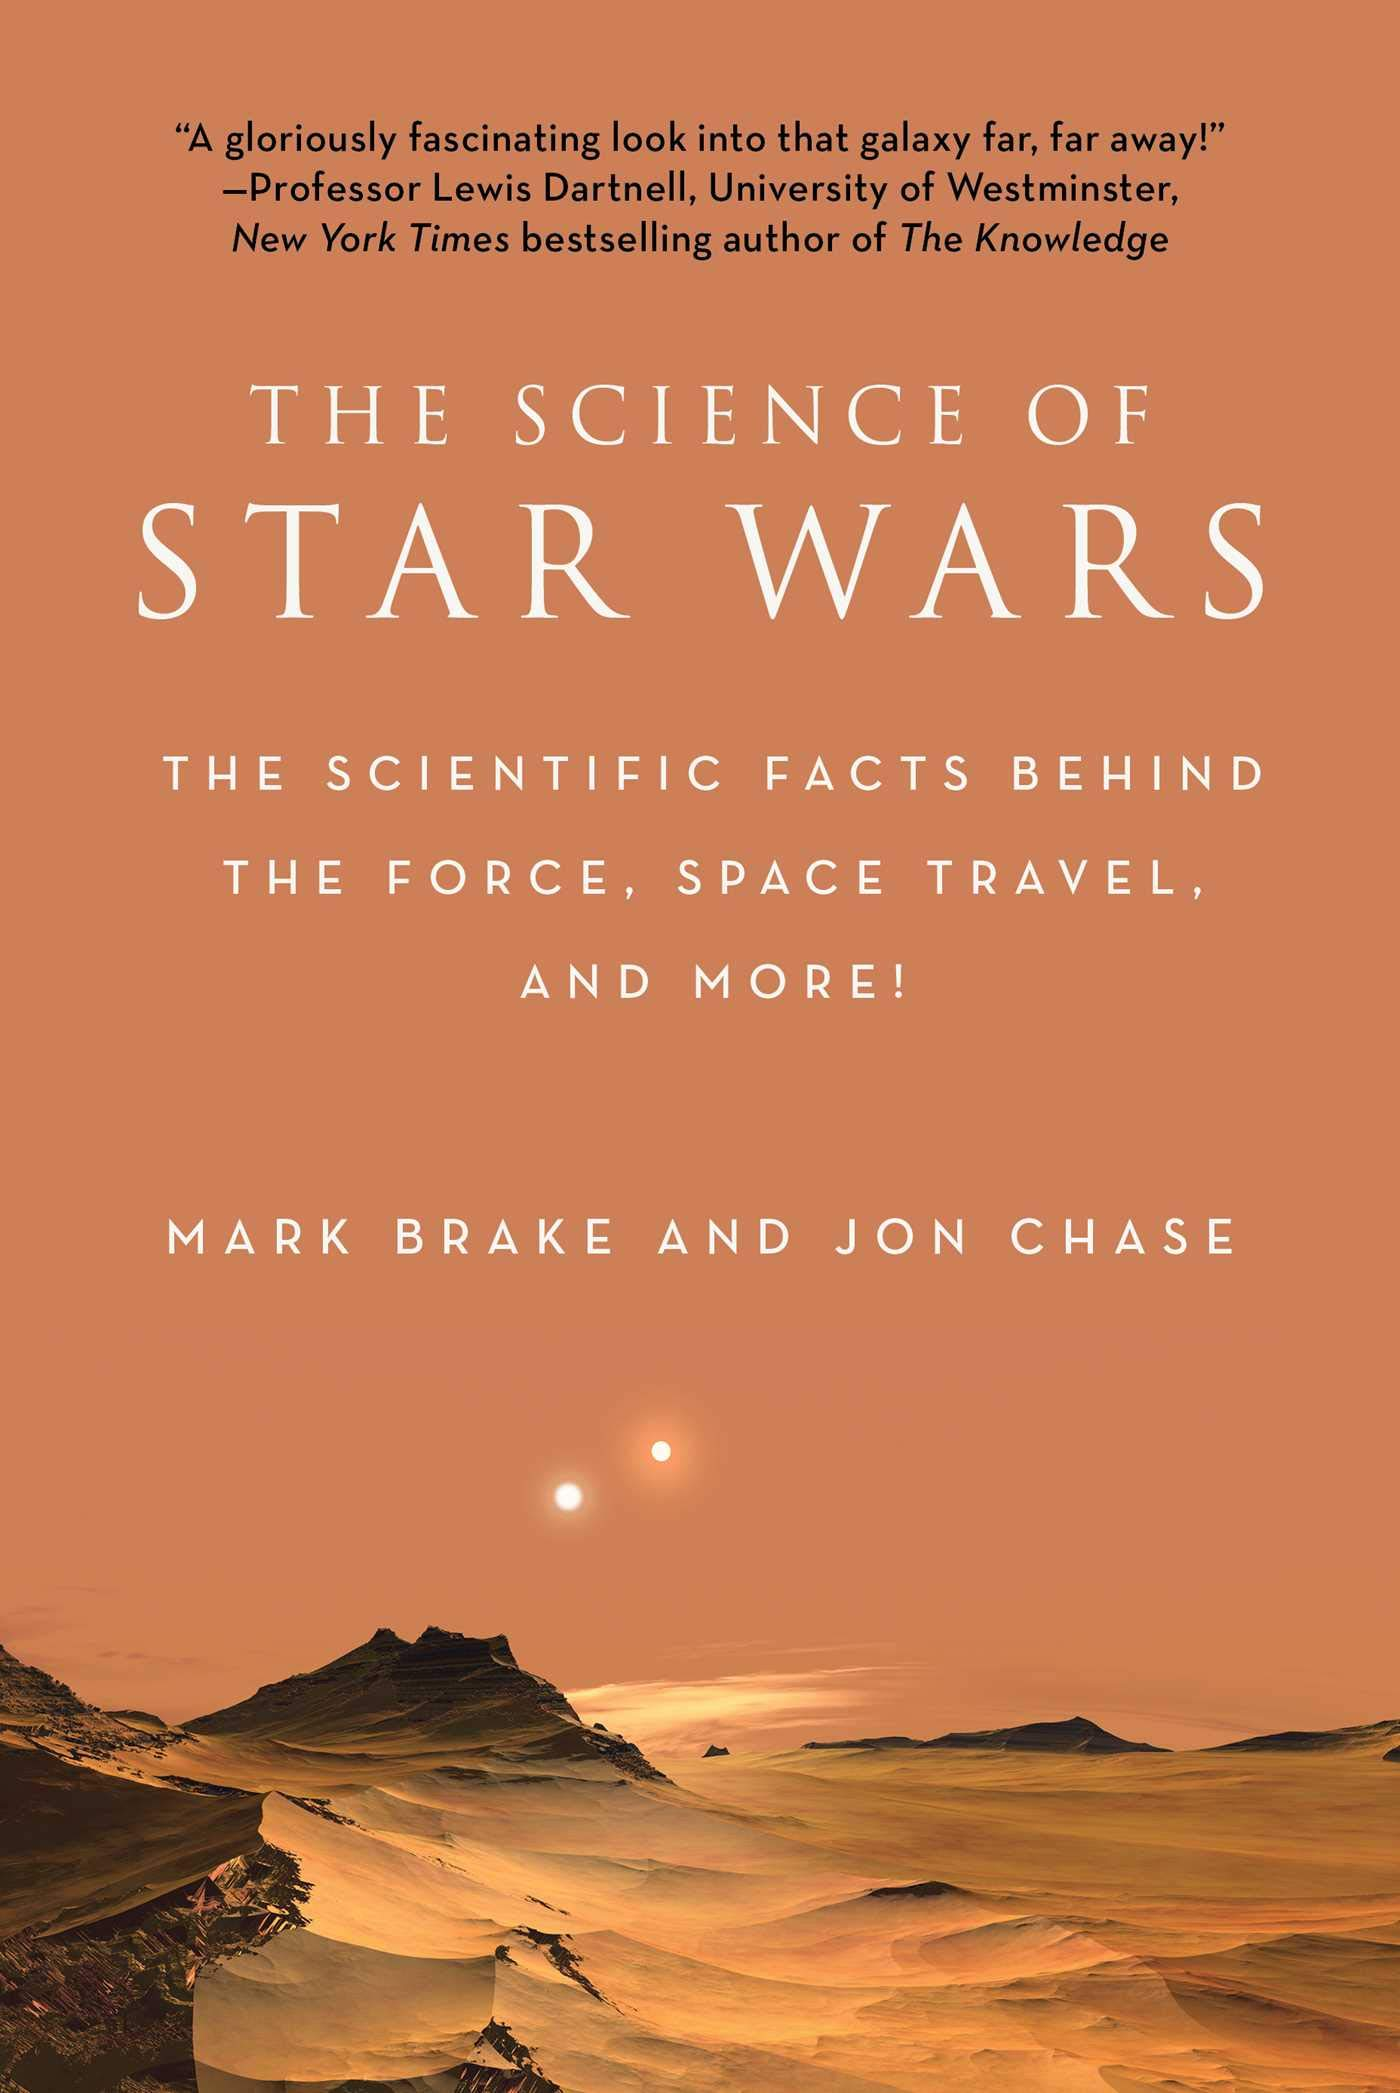 The Science of Star Wars (2016)